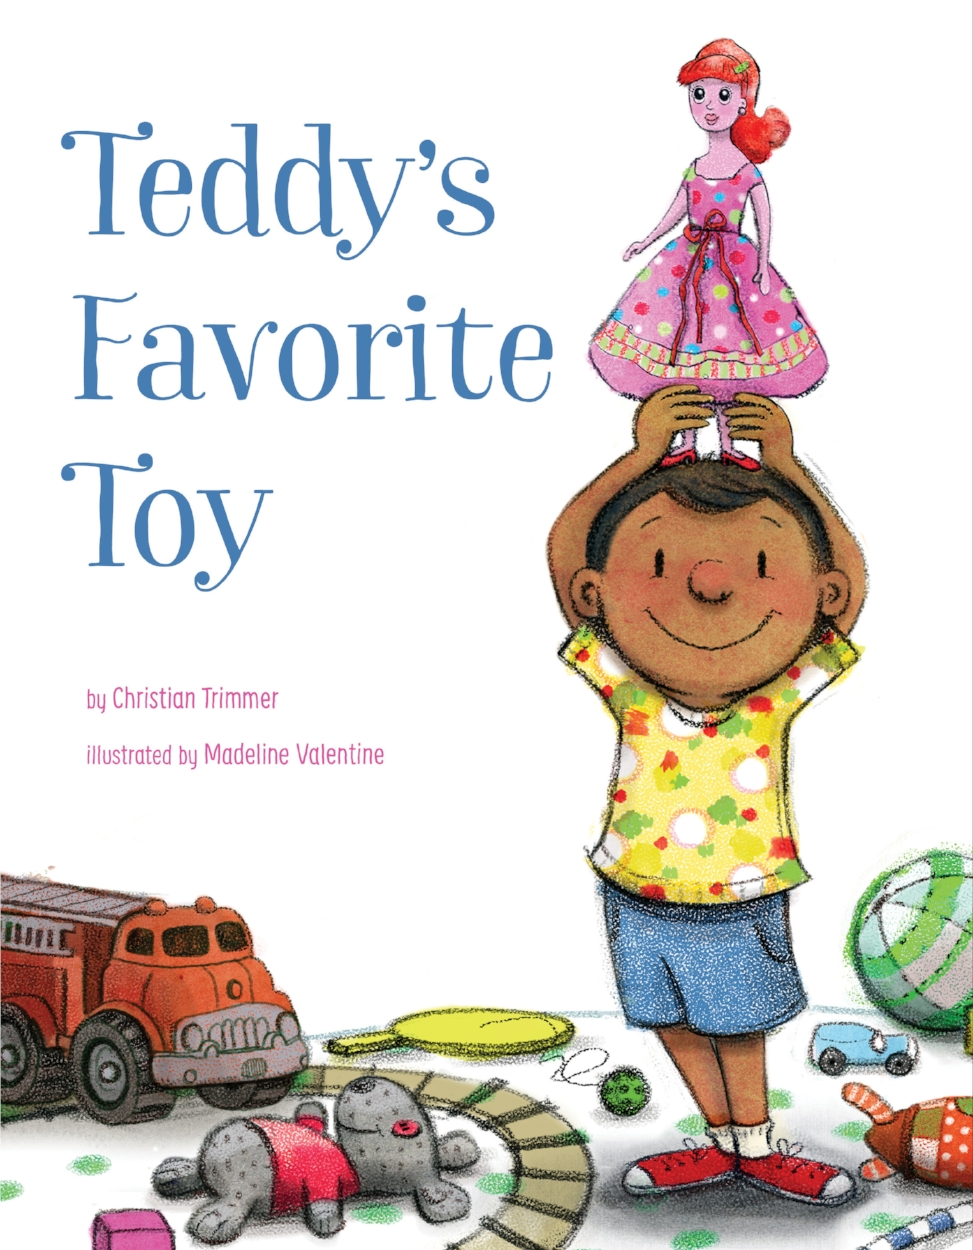 Front Cover - Teddy's Favorite Toy.jpg